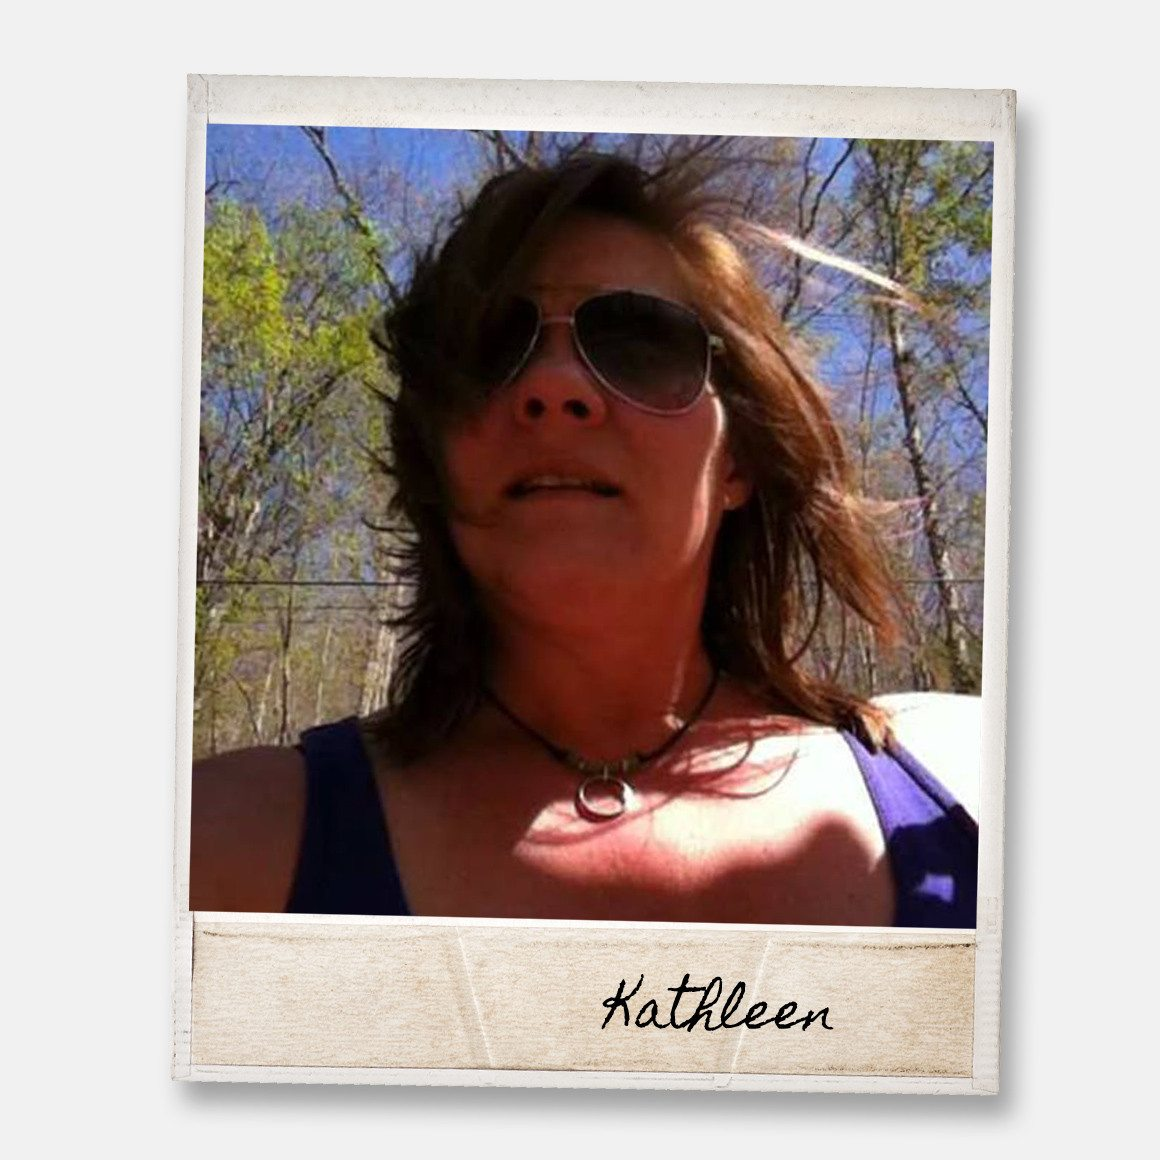 Kathleen enjoys a breezy day at ACE Adventure Resort